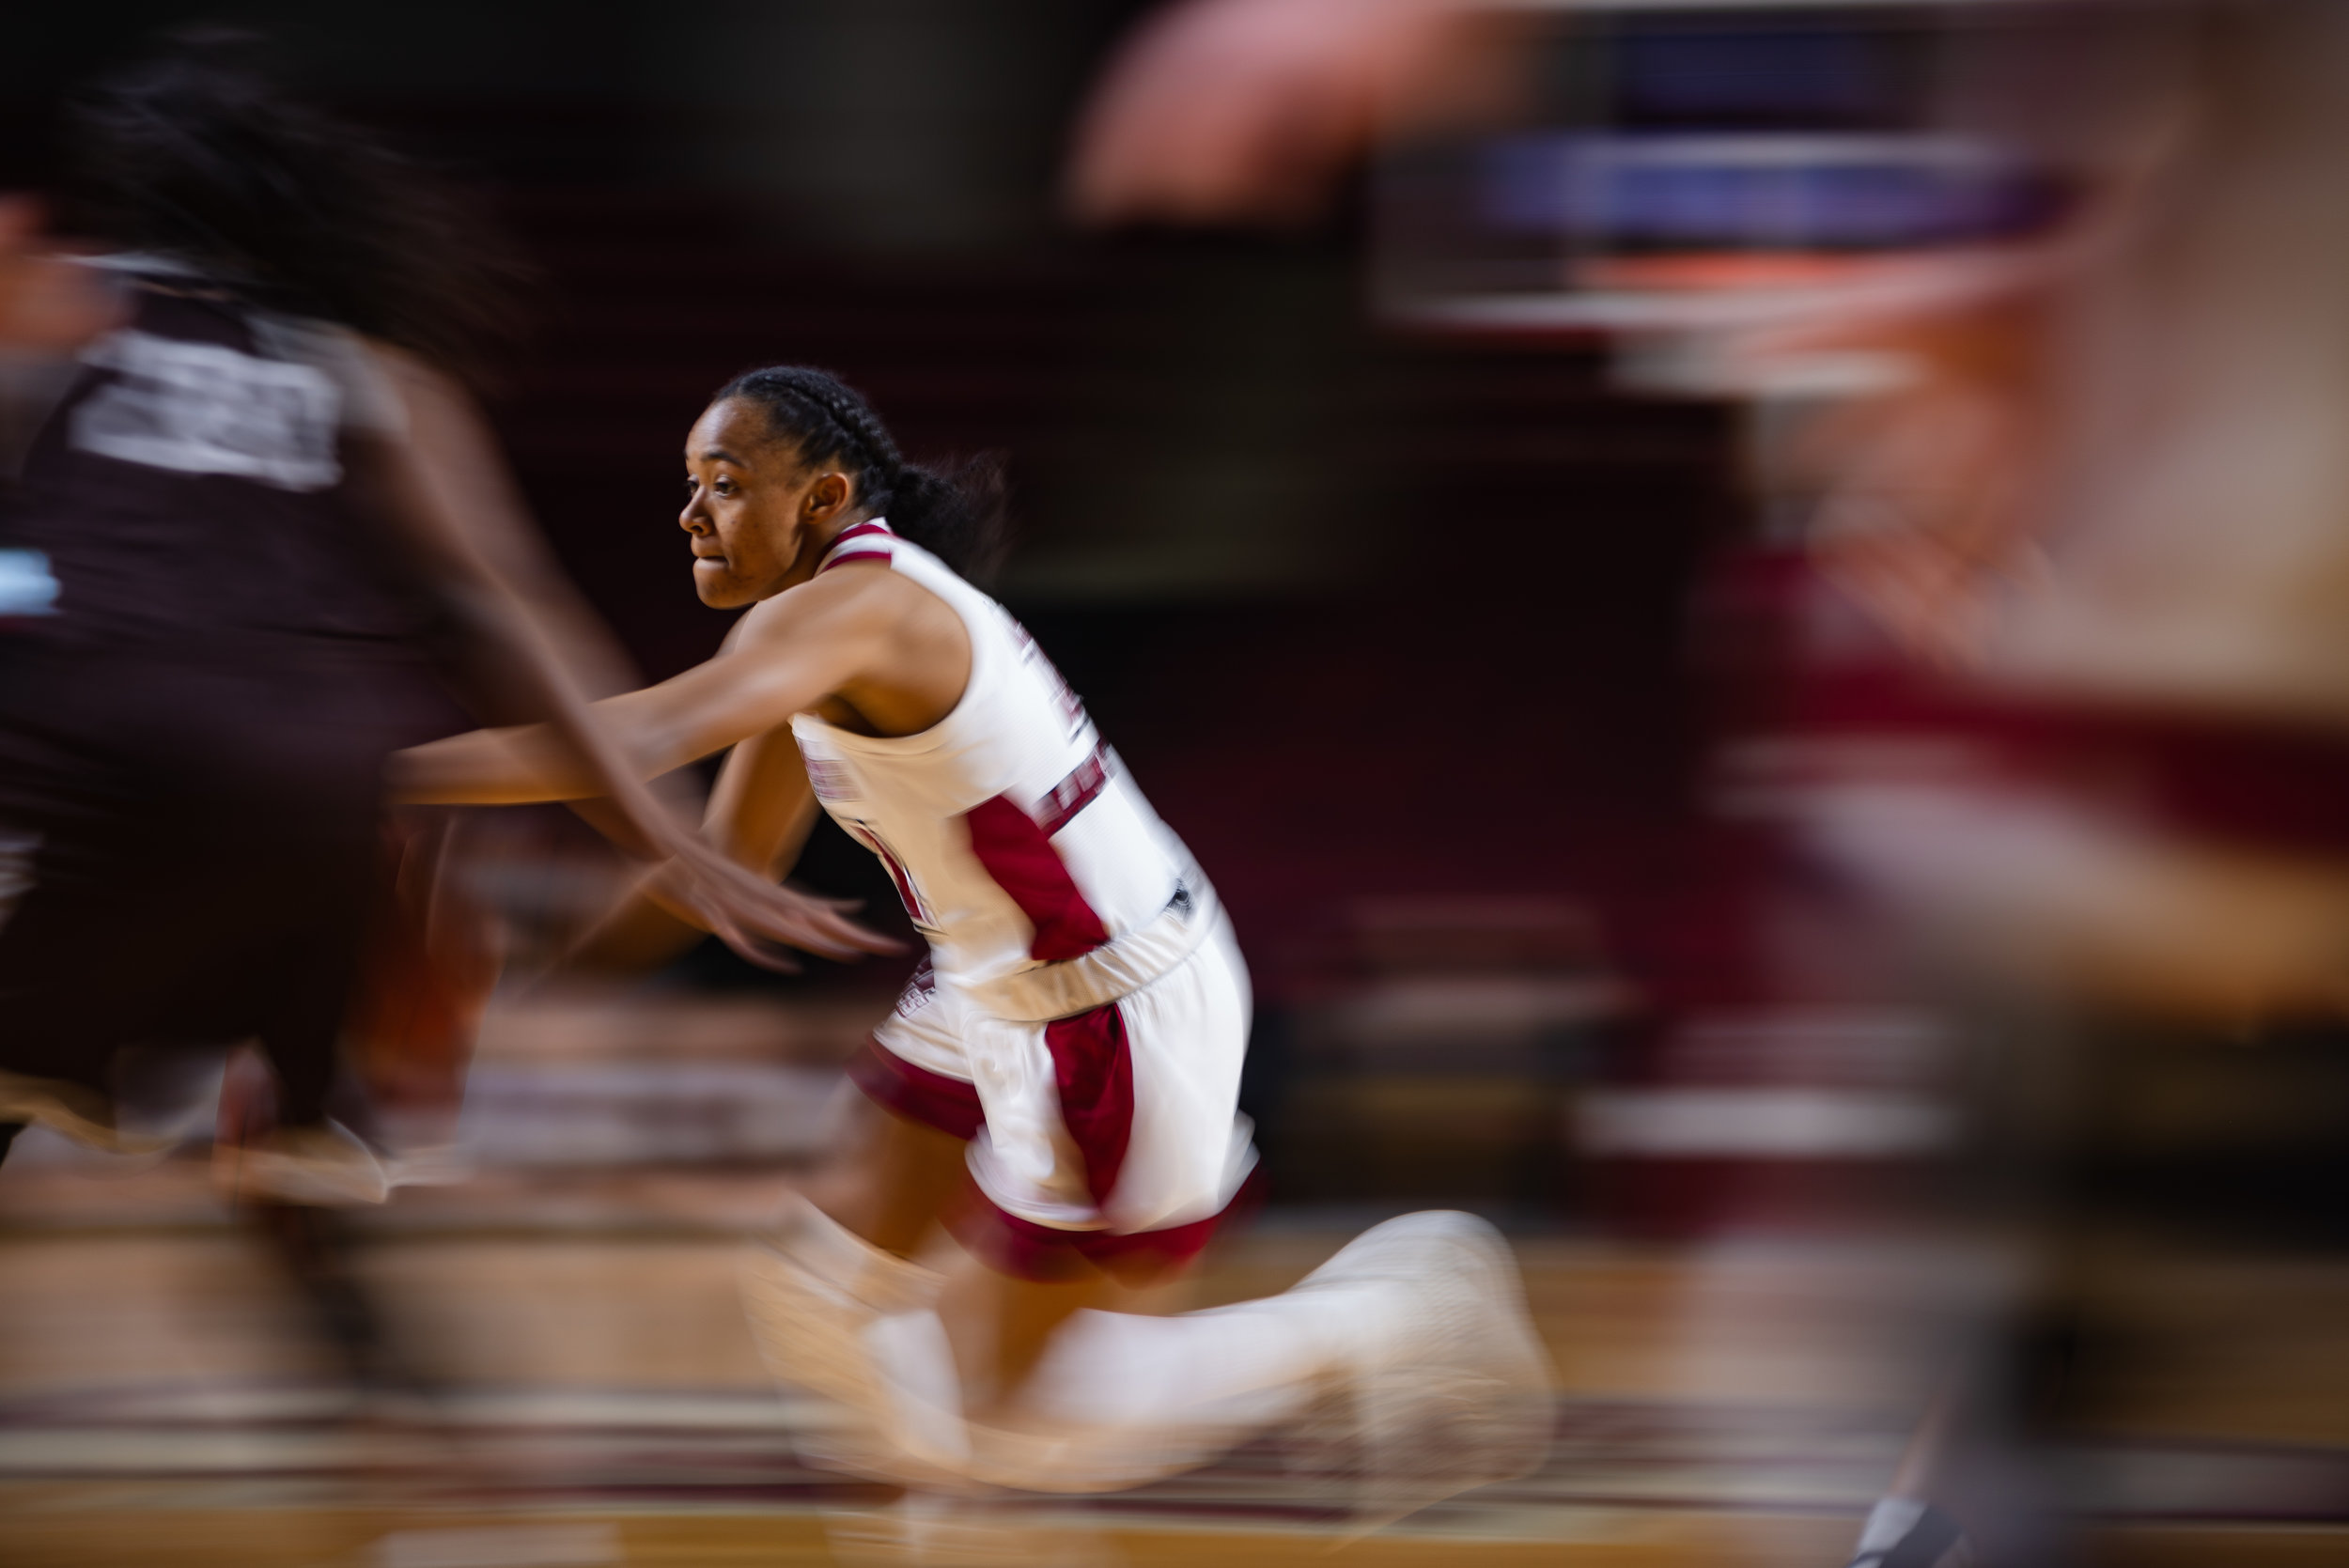 UMass Women's Basketball falls short against St. Bonaventure in a close game, losing by 1 point. The final score was 63-64 at the Mullins Center on Saturday Jan. 26, 2019.  (Photo by Judith Gibson-Okunieff)